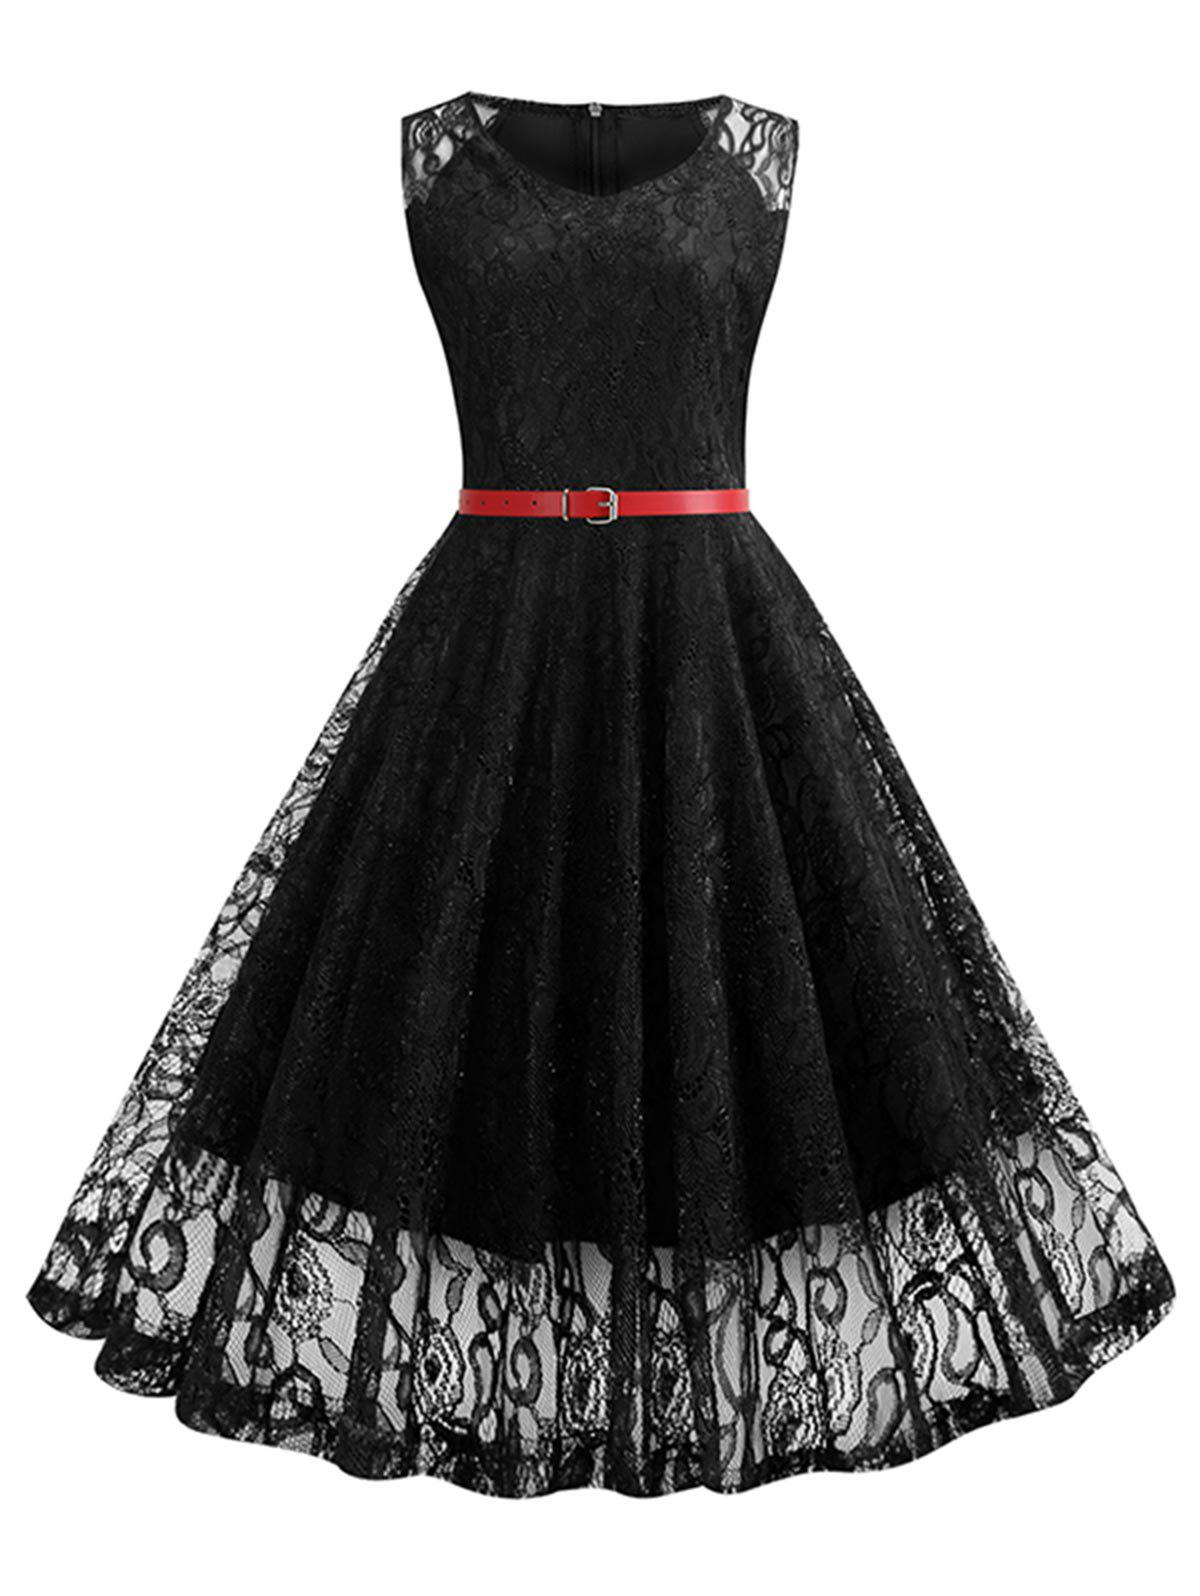 Sleeveless Belted Lace A Line Dress - BLACK XL